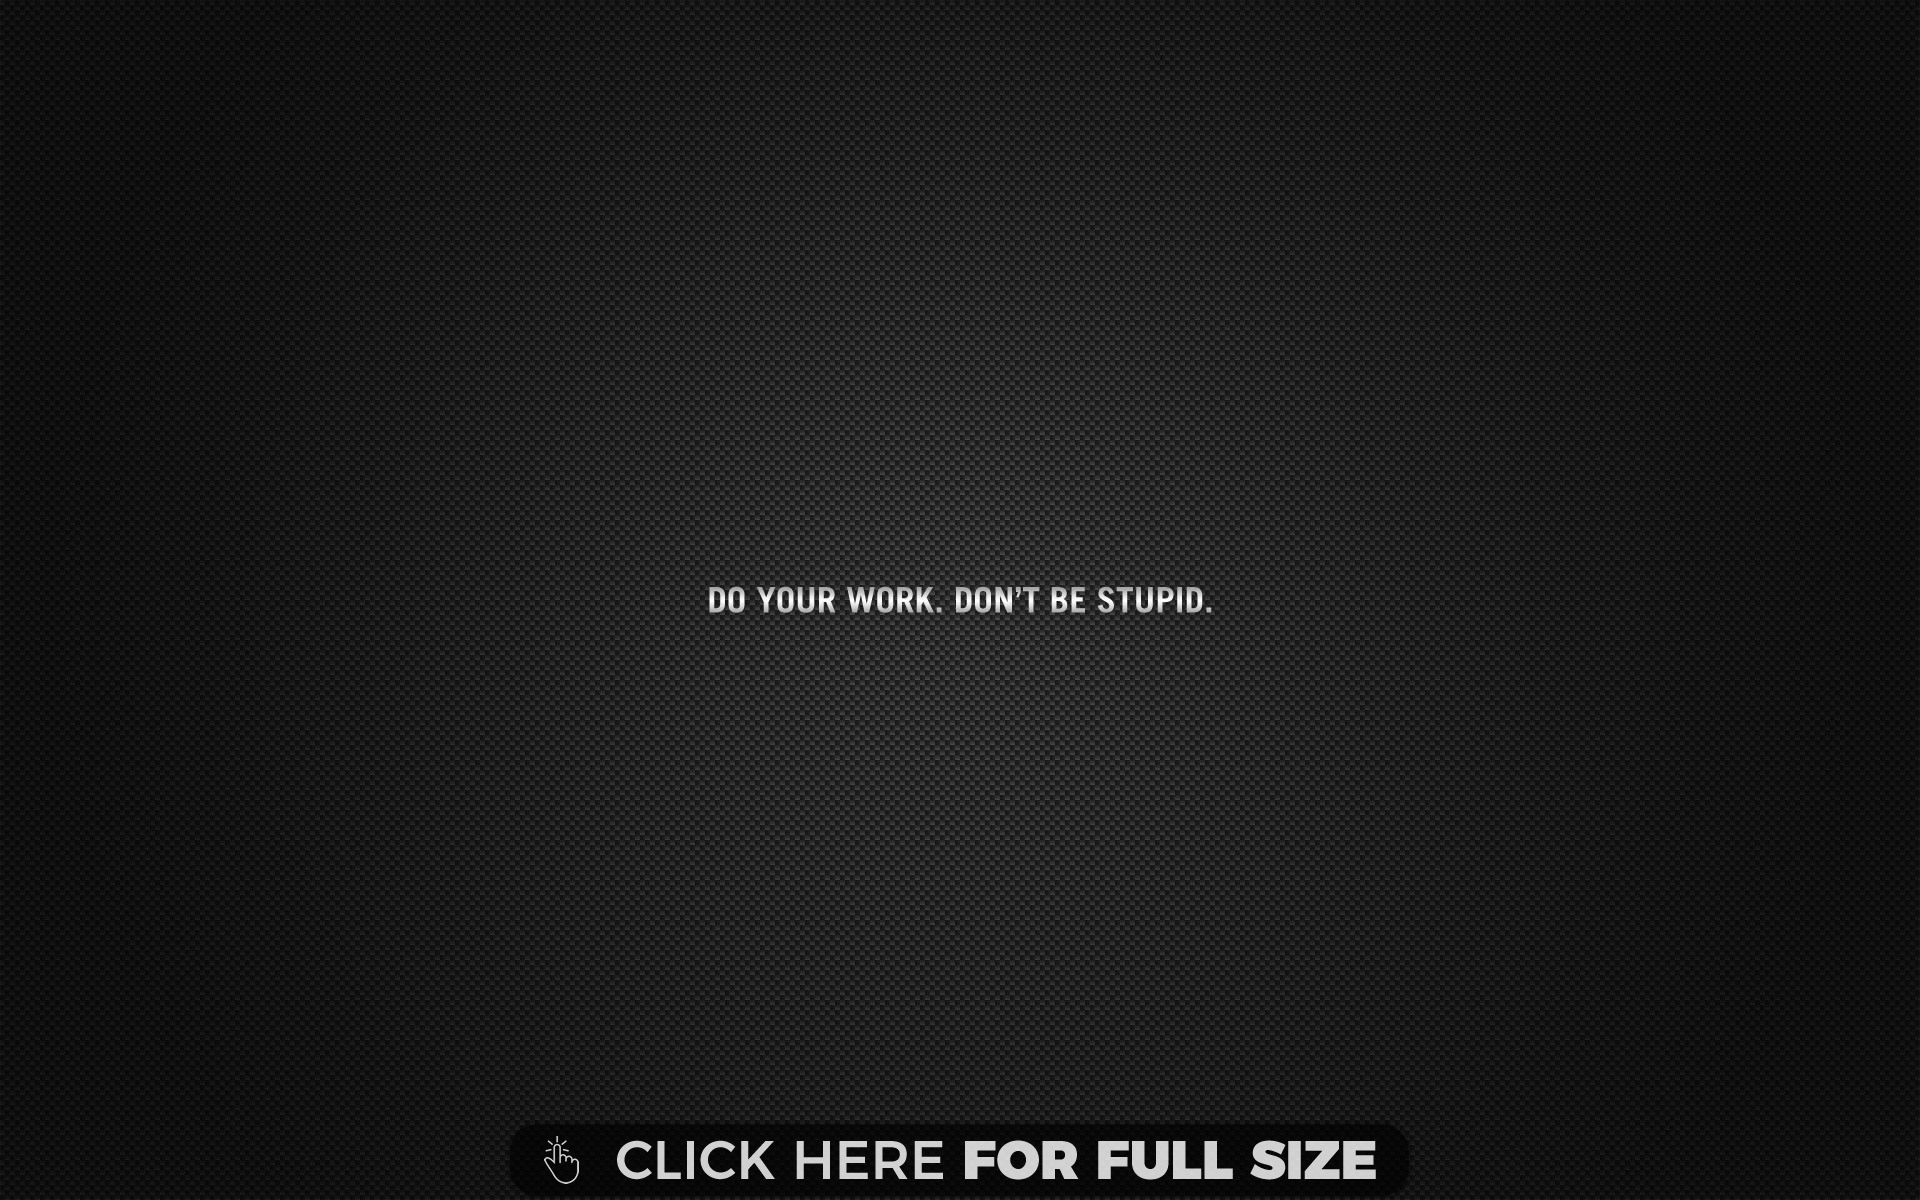 Do Your Work Dont Be Stupid Background wallpaper | Desktop Wallpapers | Graphic wallpaper ...